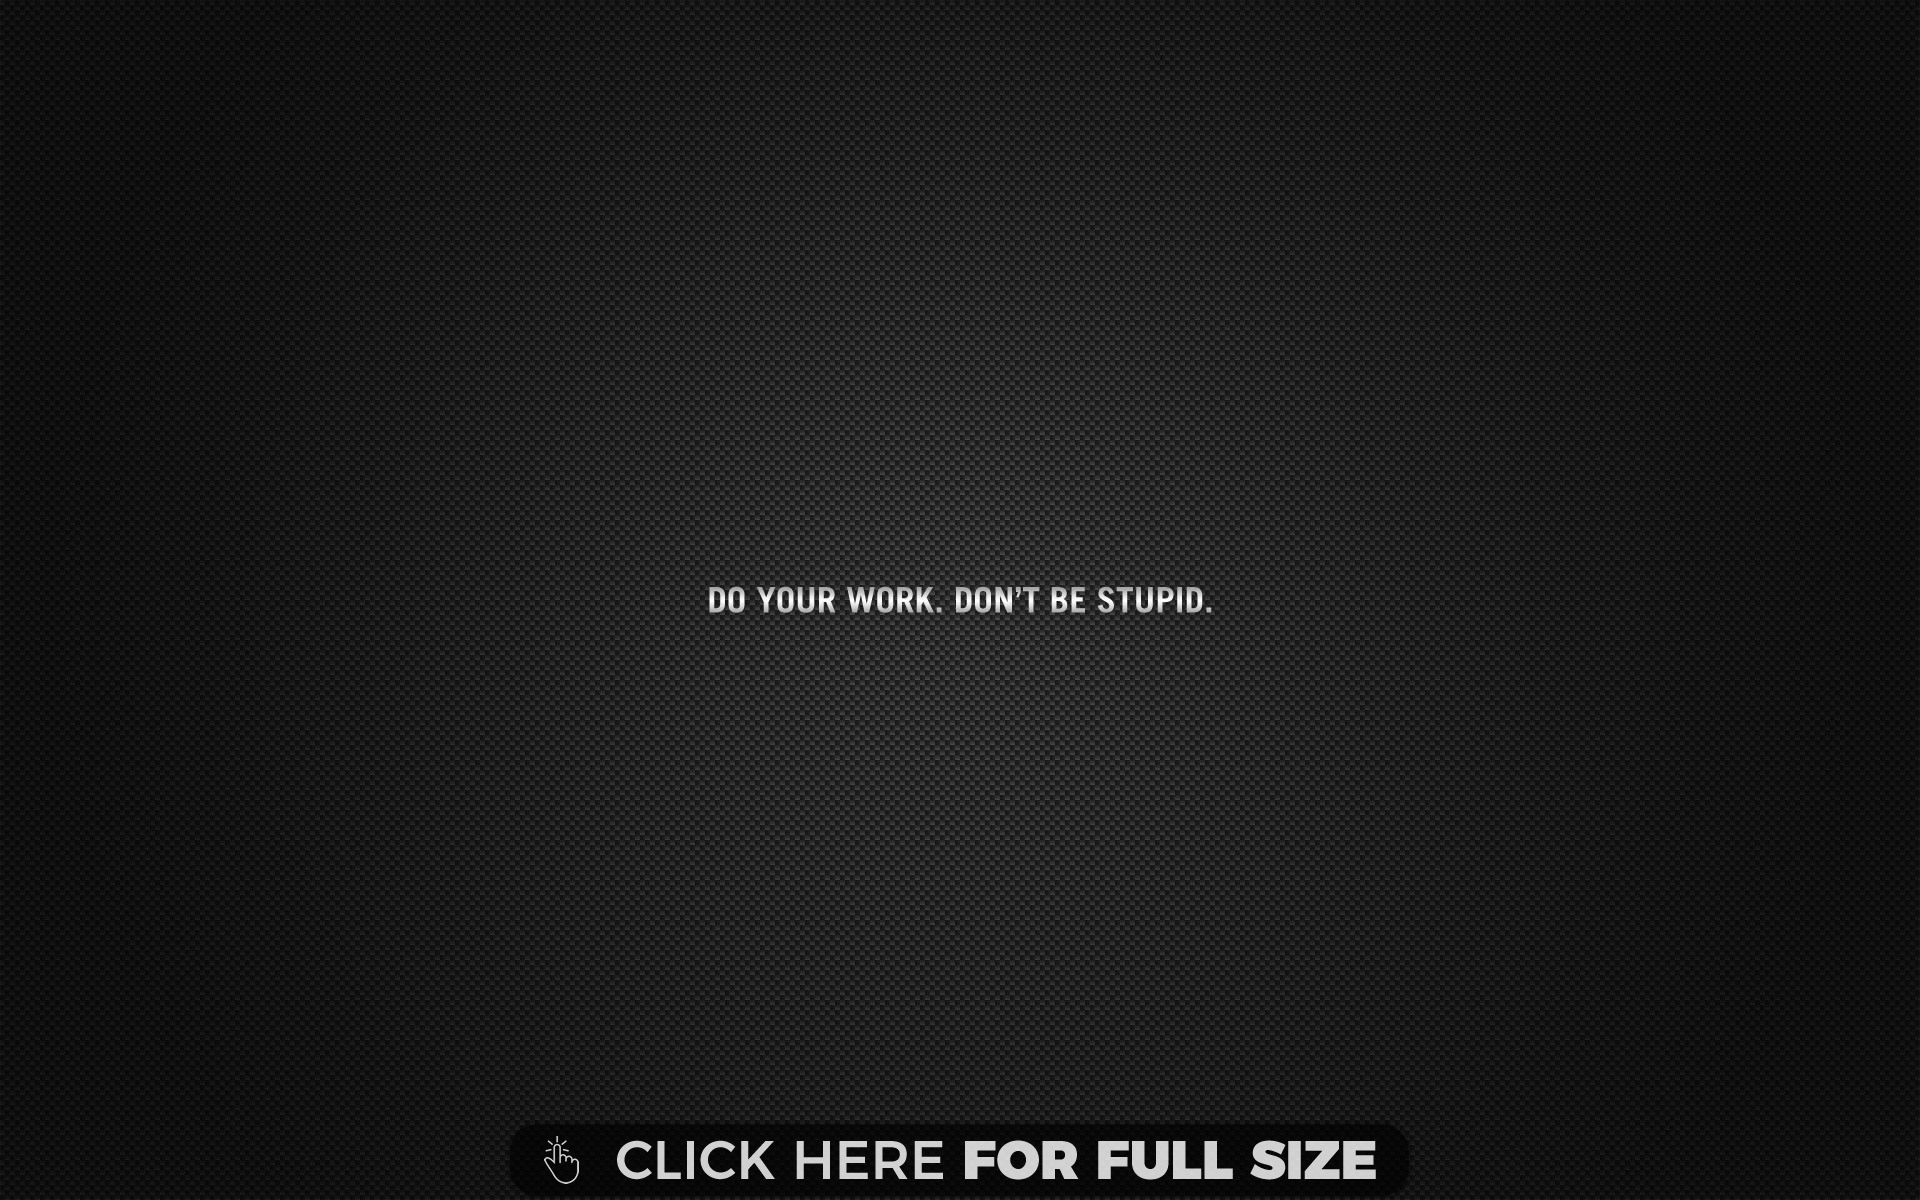 Do Your Work Dont Be Stupid Background wallpaper | Desktop Wallpapers | Graphic wallpaper ...